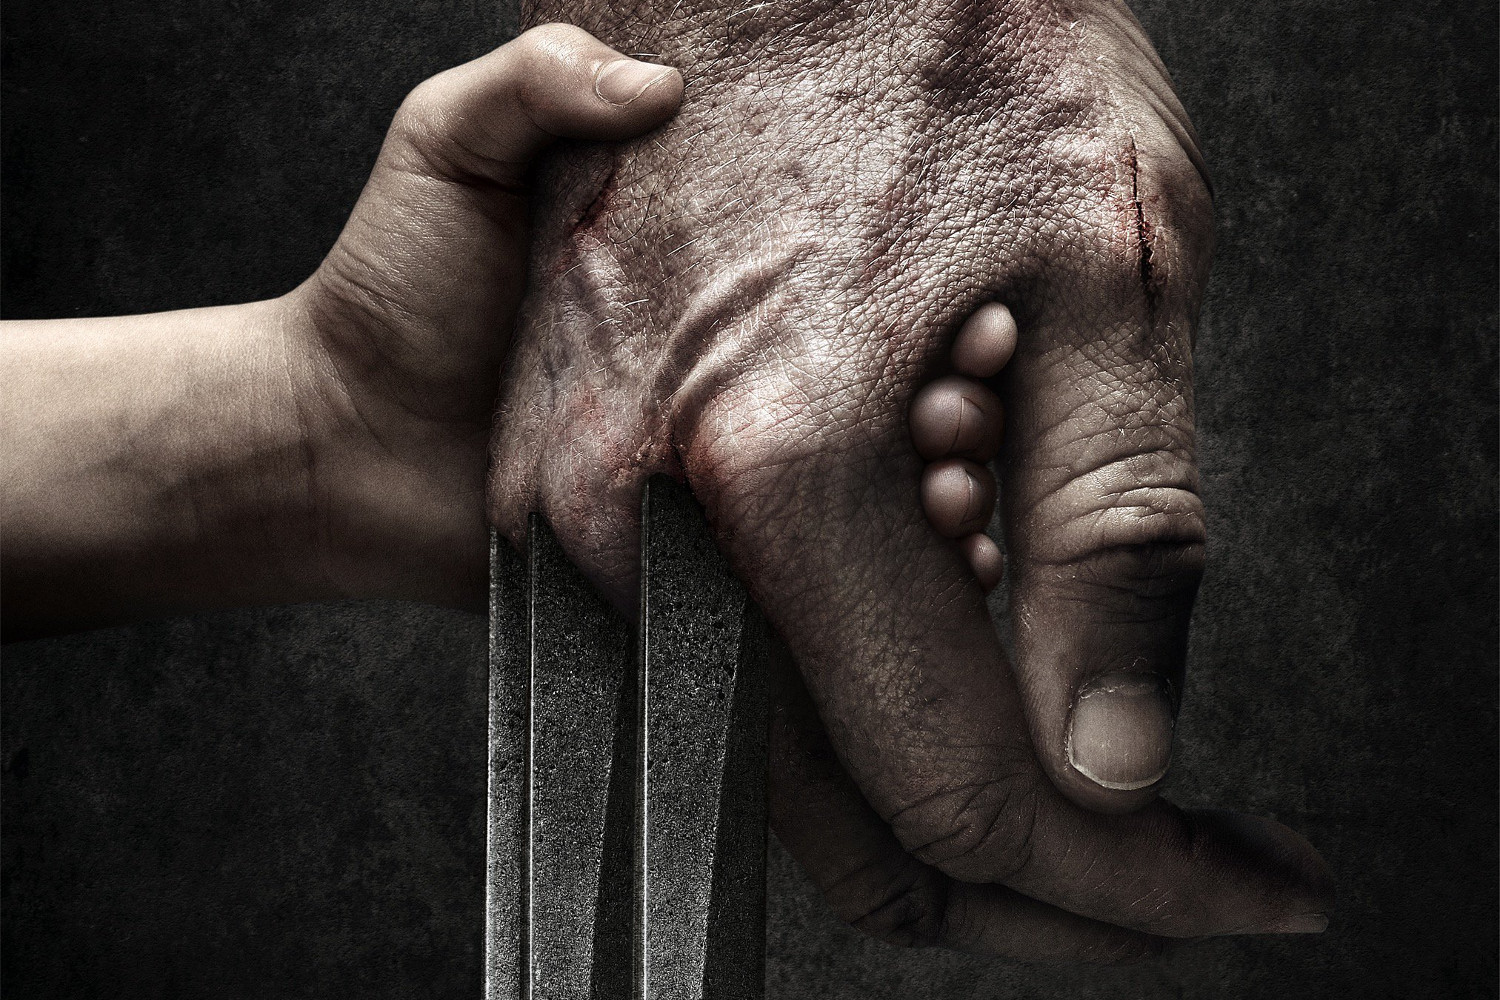 the life and secrets of wolverine in logan an x men movie by james mangold Action directed by james mangold  stephen merchant, plus see how imdb  users ranked the movies of the x-men franchise  hugh jackman at an event for  logan (2017) james mangold in logan (2017) patrick  x-men: days of future  past  he takes care of the ailing old professor x whom he keeps hidden away.